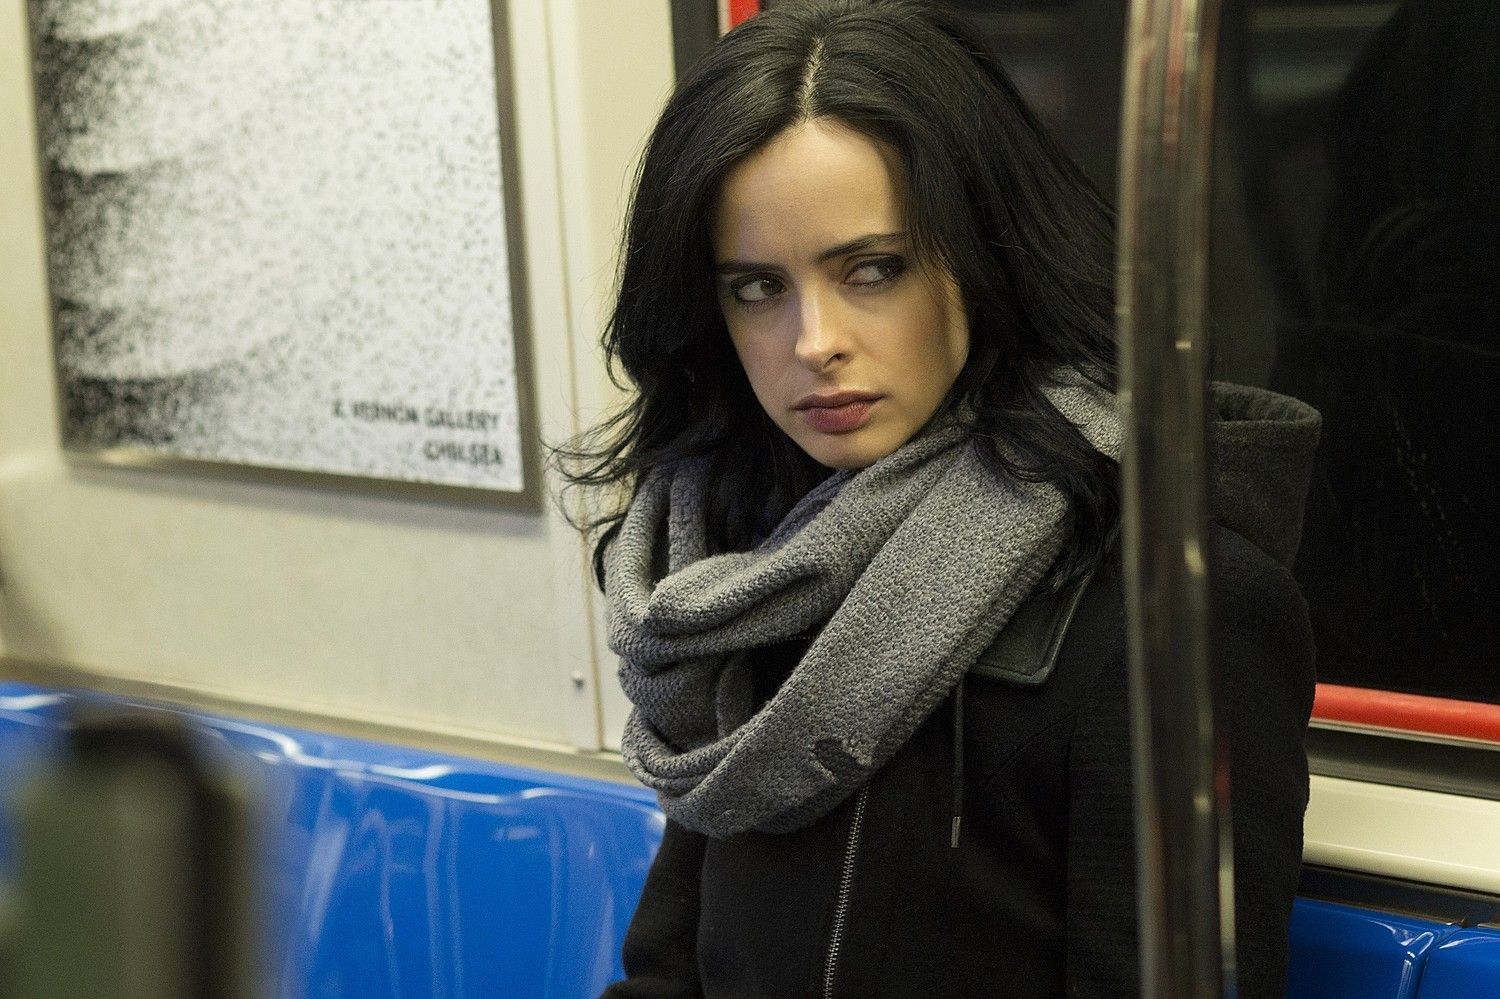 Critics and viewers have been raving about Marvel's new offering on Netflix, the noir-ish Jessica Jones; the youngest tomboy comic character of Marvel's superhero canon, this brutally dark and haunting series has tipped the critics scales on how moody, brooding comic book characters should be executed onscreen. We discuss what made the series such an amazing piece of work.  #marvel #jessicajones #netflix #badasswomen #geekgirl #tomboy #tomboygeek